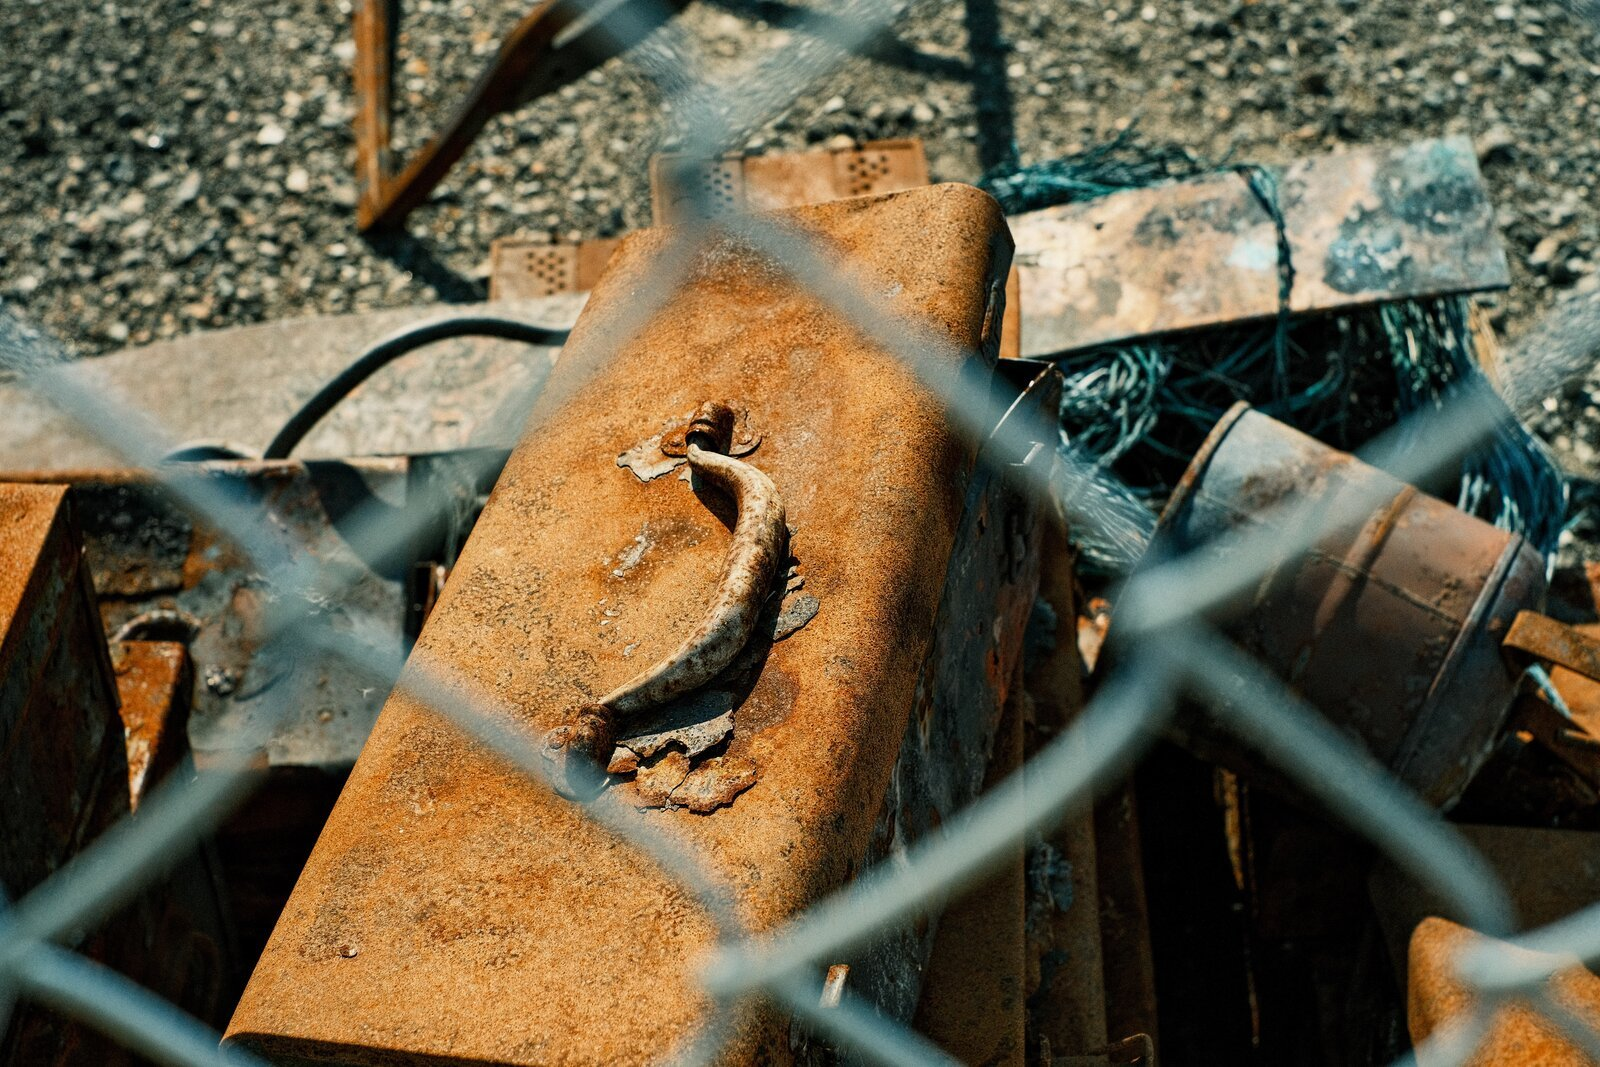 XPro3_Sept13_21_burned_rusted_toolbox.jpg